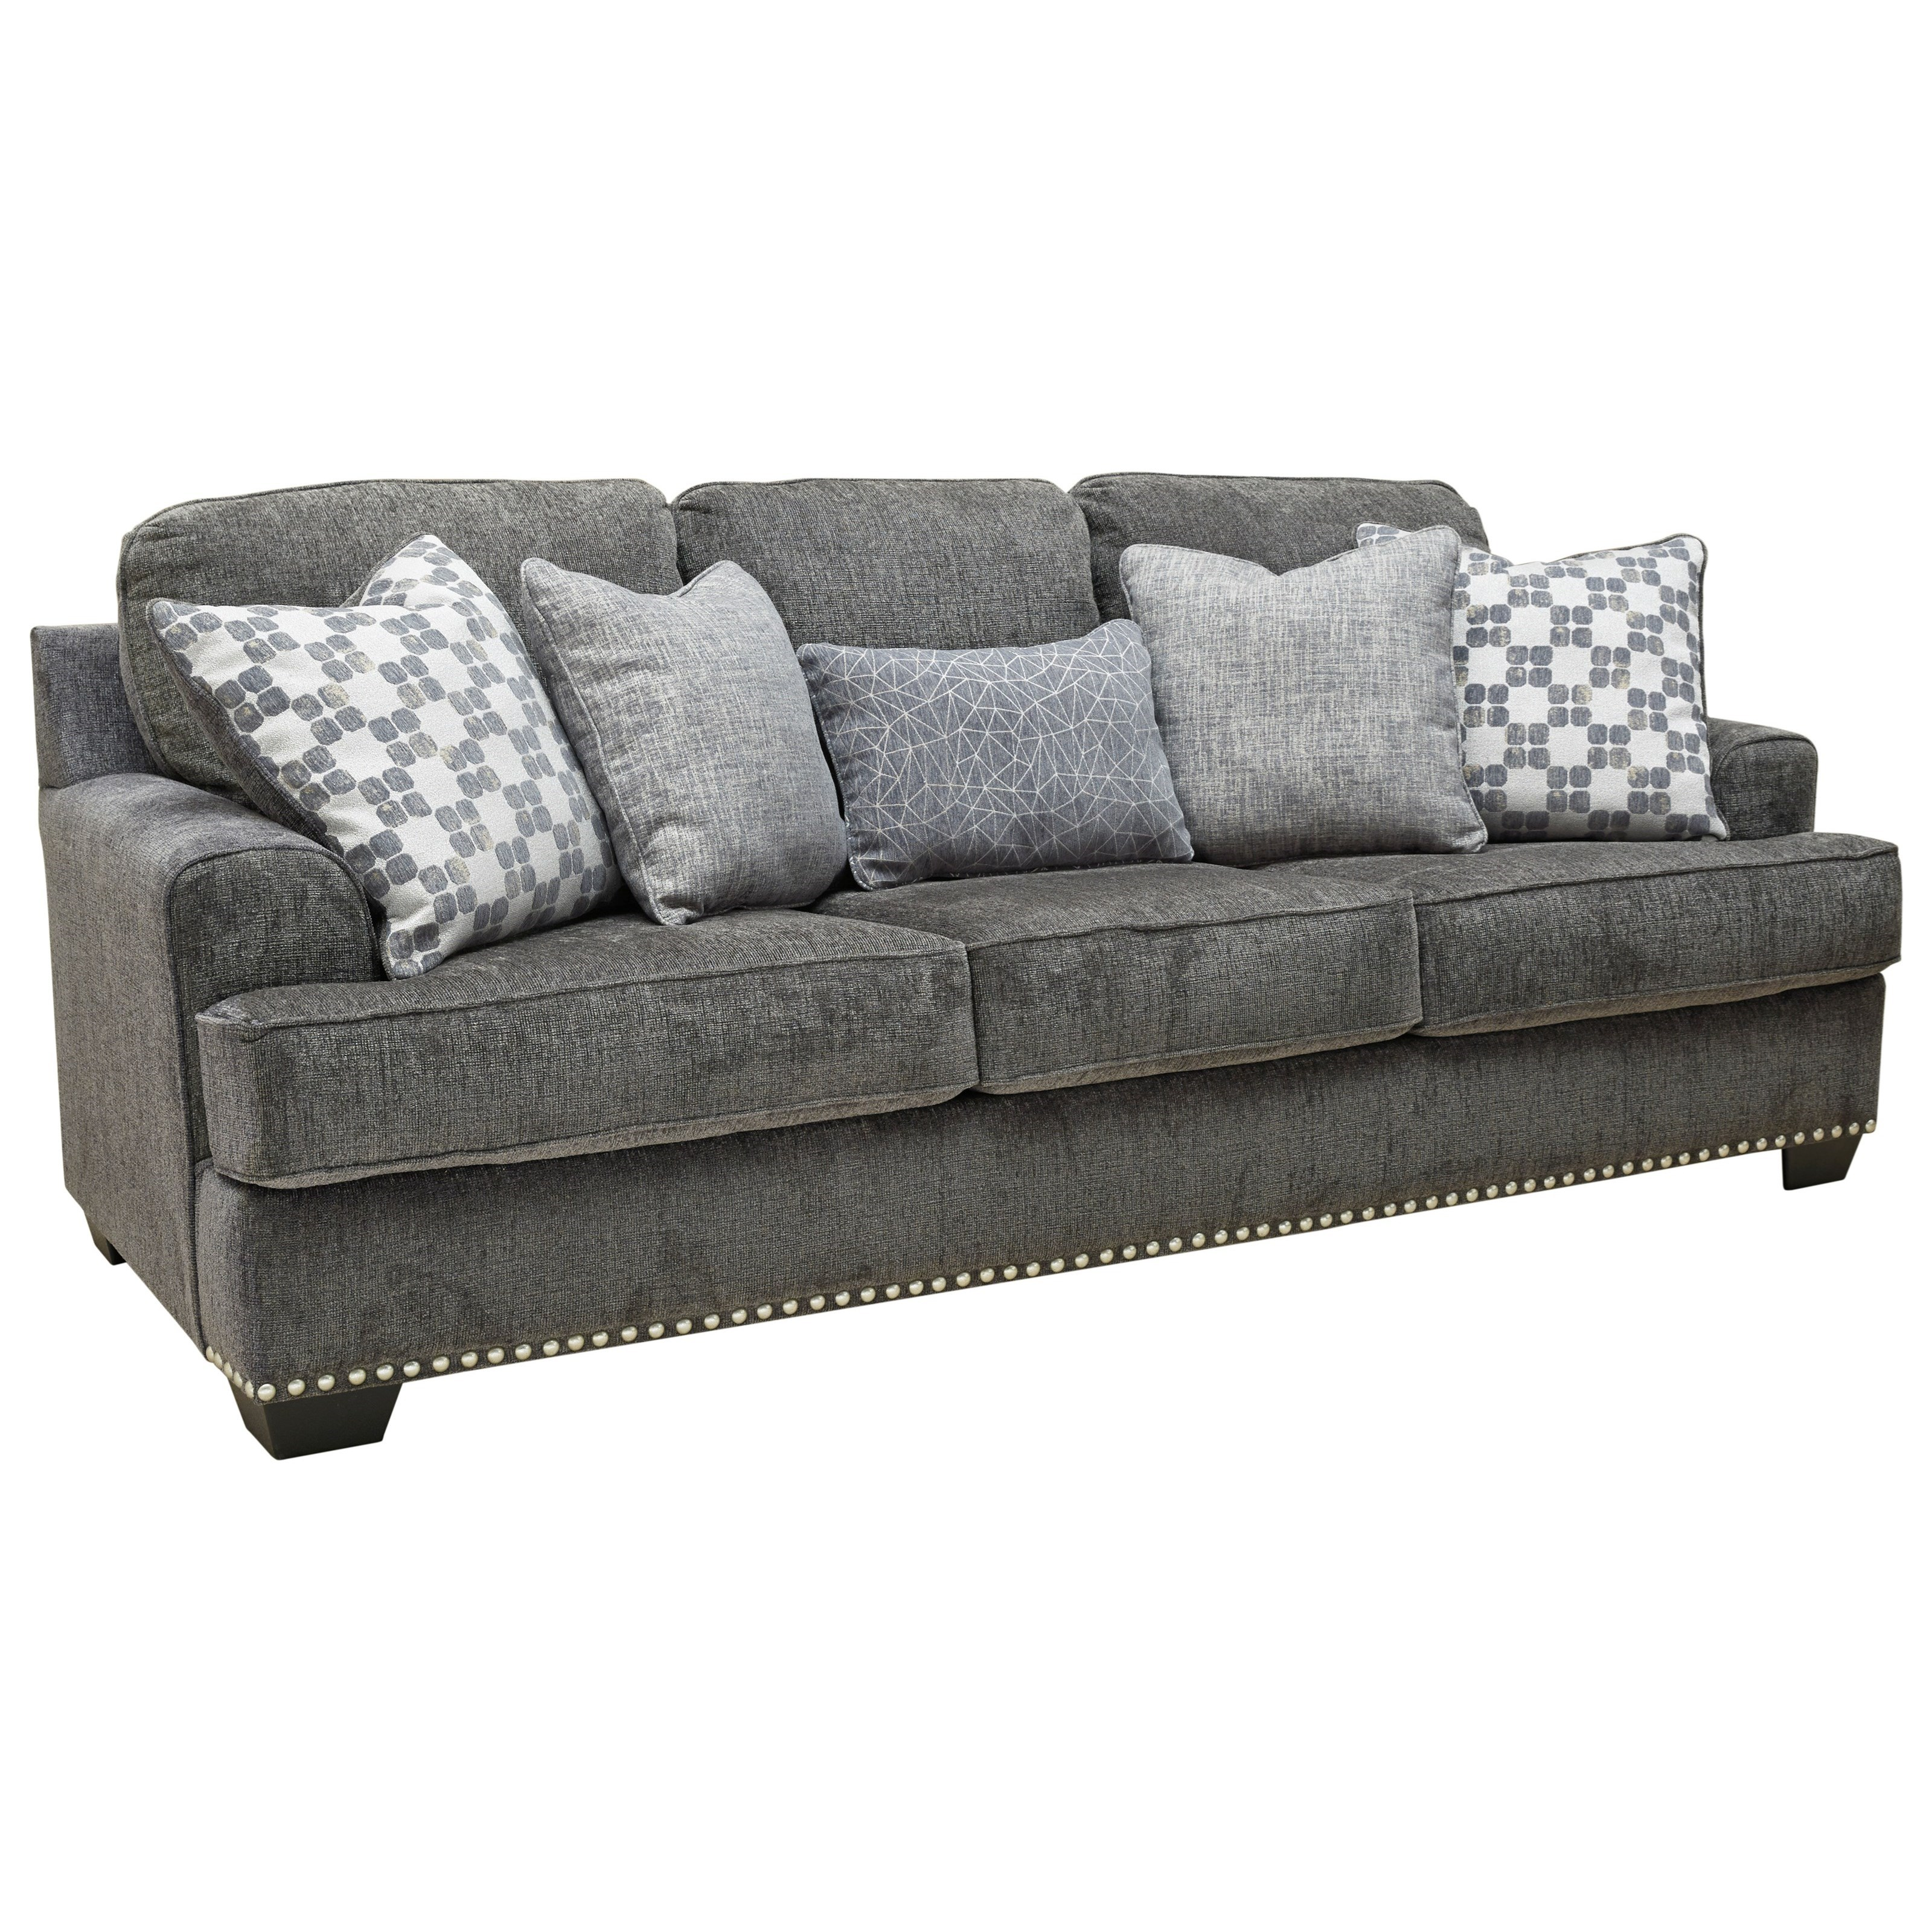 Locklin Sofa by Benchcraft at Northeast Factory Direct